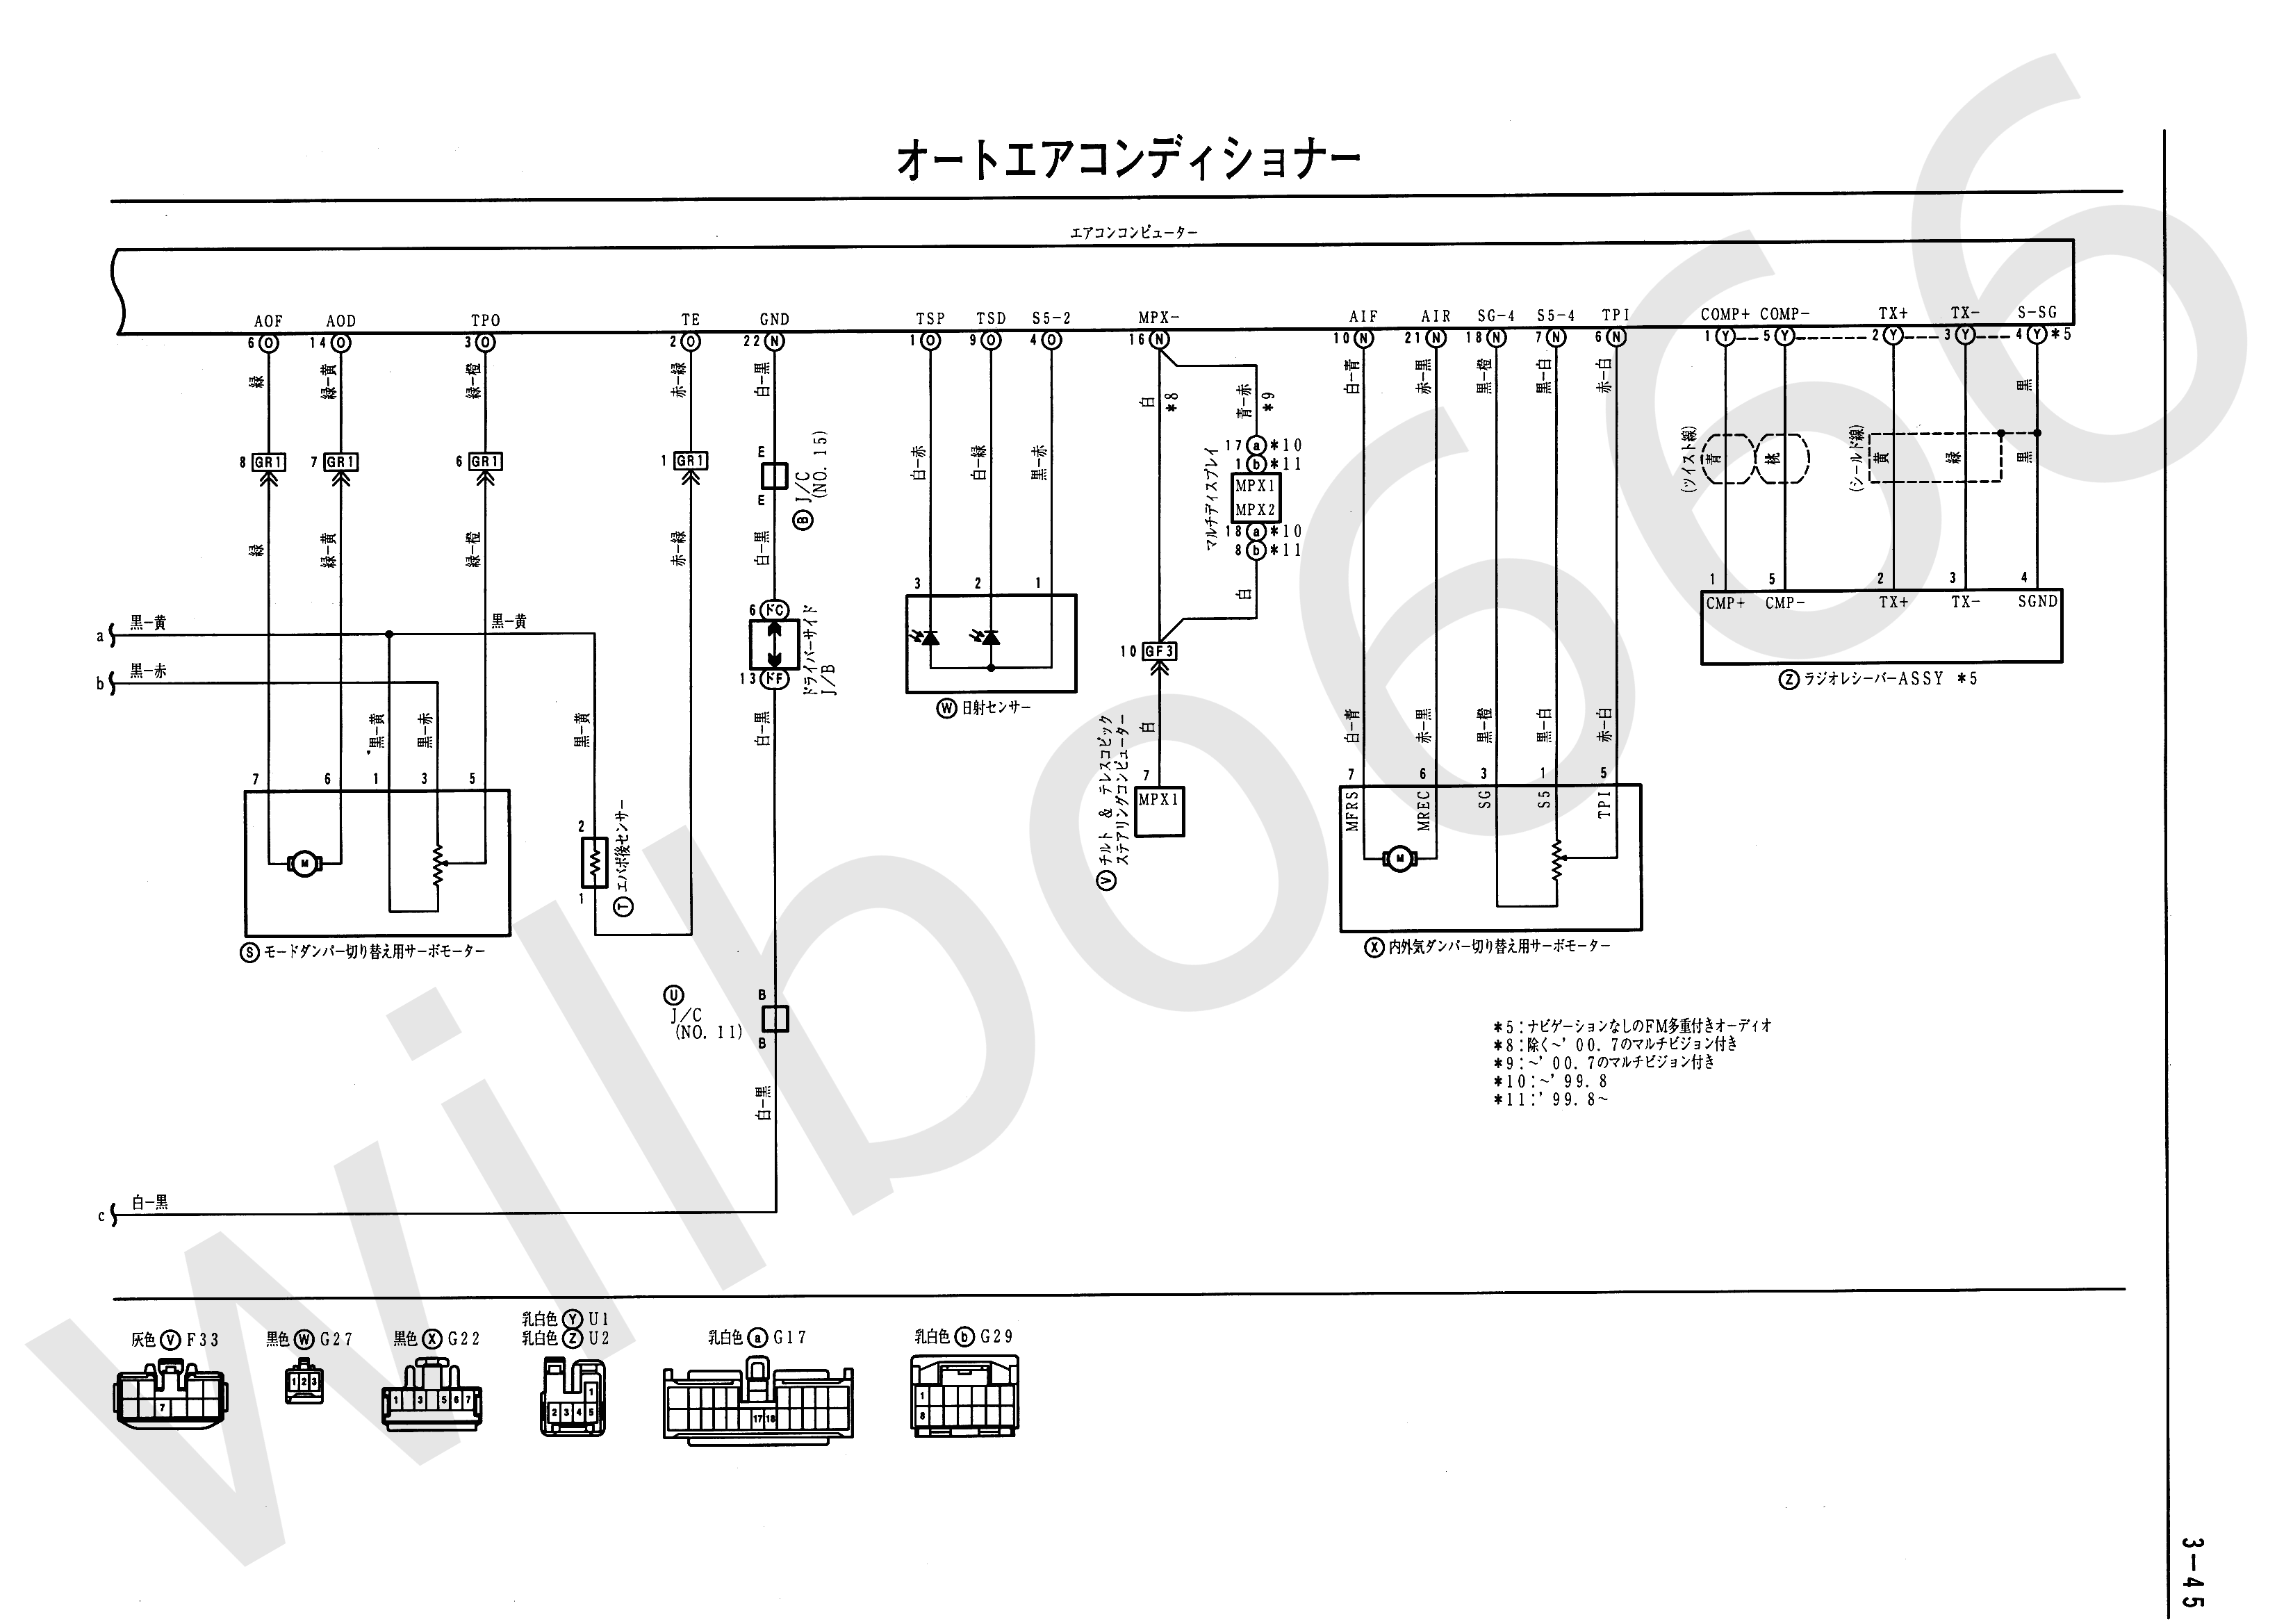 JZS161 Electrical Wiring Diagram 6748505 3 45?resize\\=3300%2C2337 rough house 50cc scooter wiring diagram kymco scooter parts kymco mxu 150 wiring diagram at reclaimingppi.co